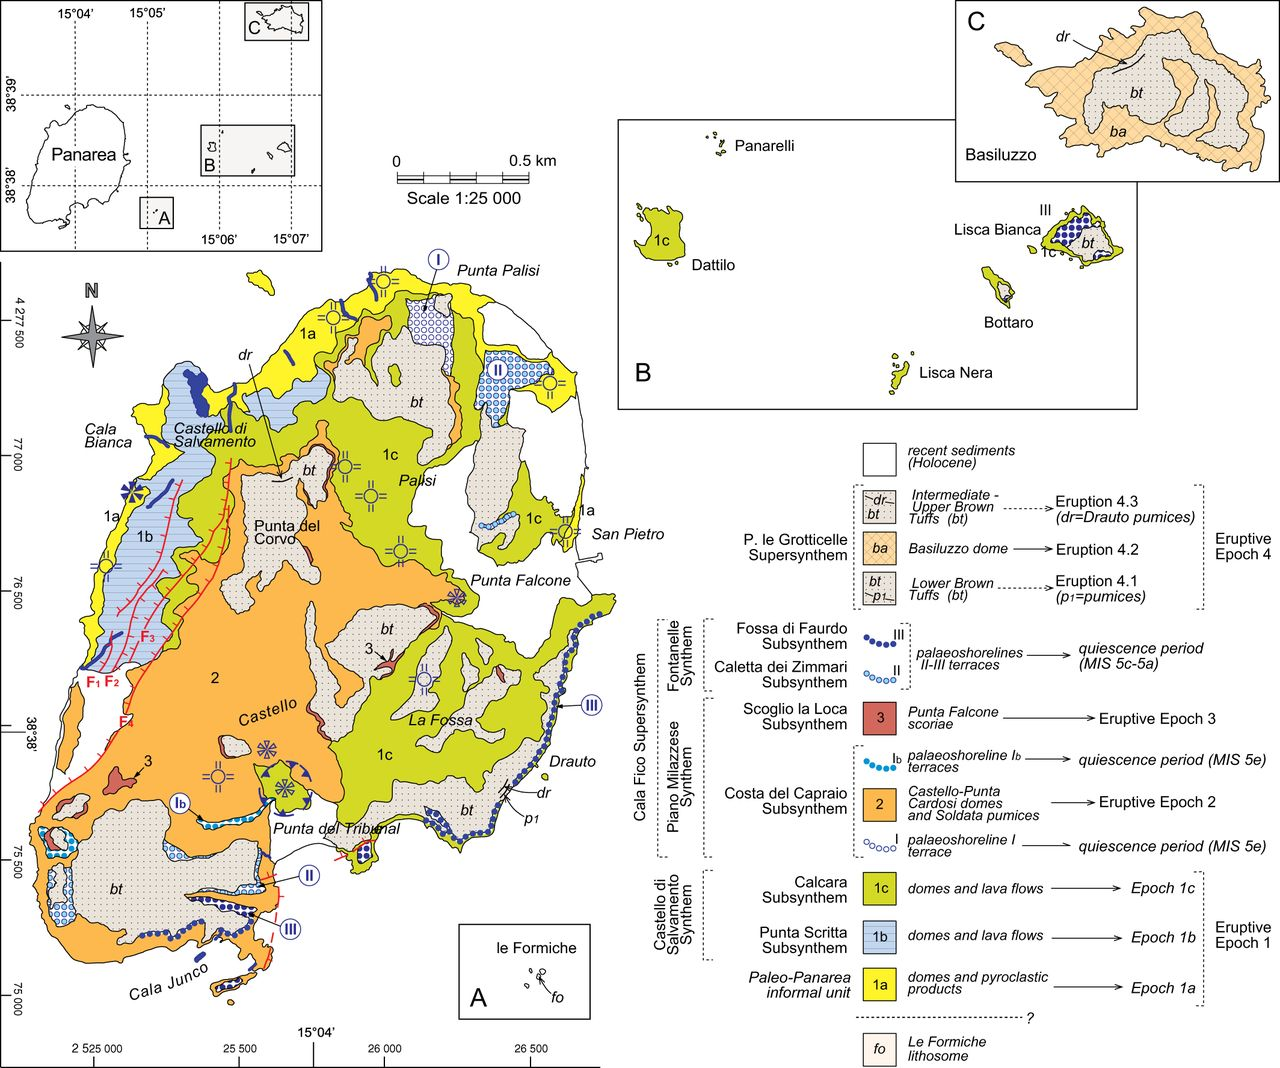 Chapter 12 Geological history of the Panarea volcanic group eastern